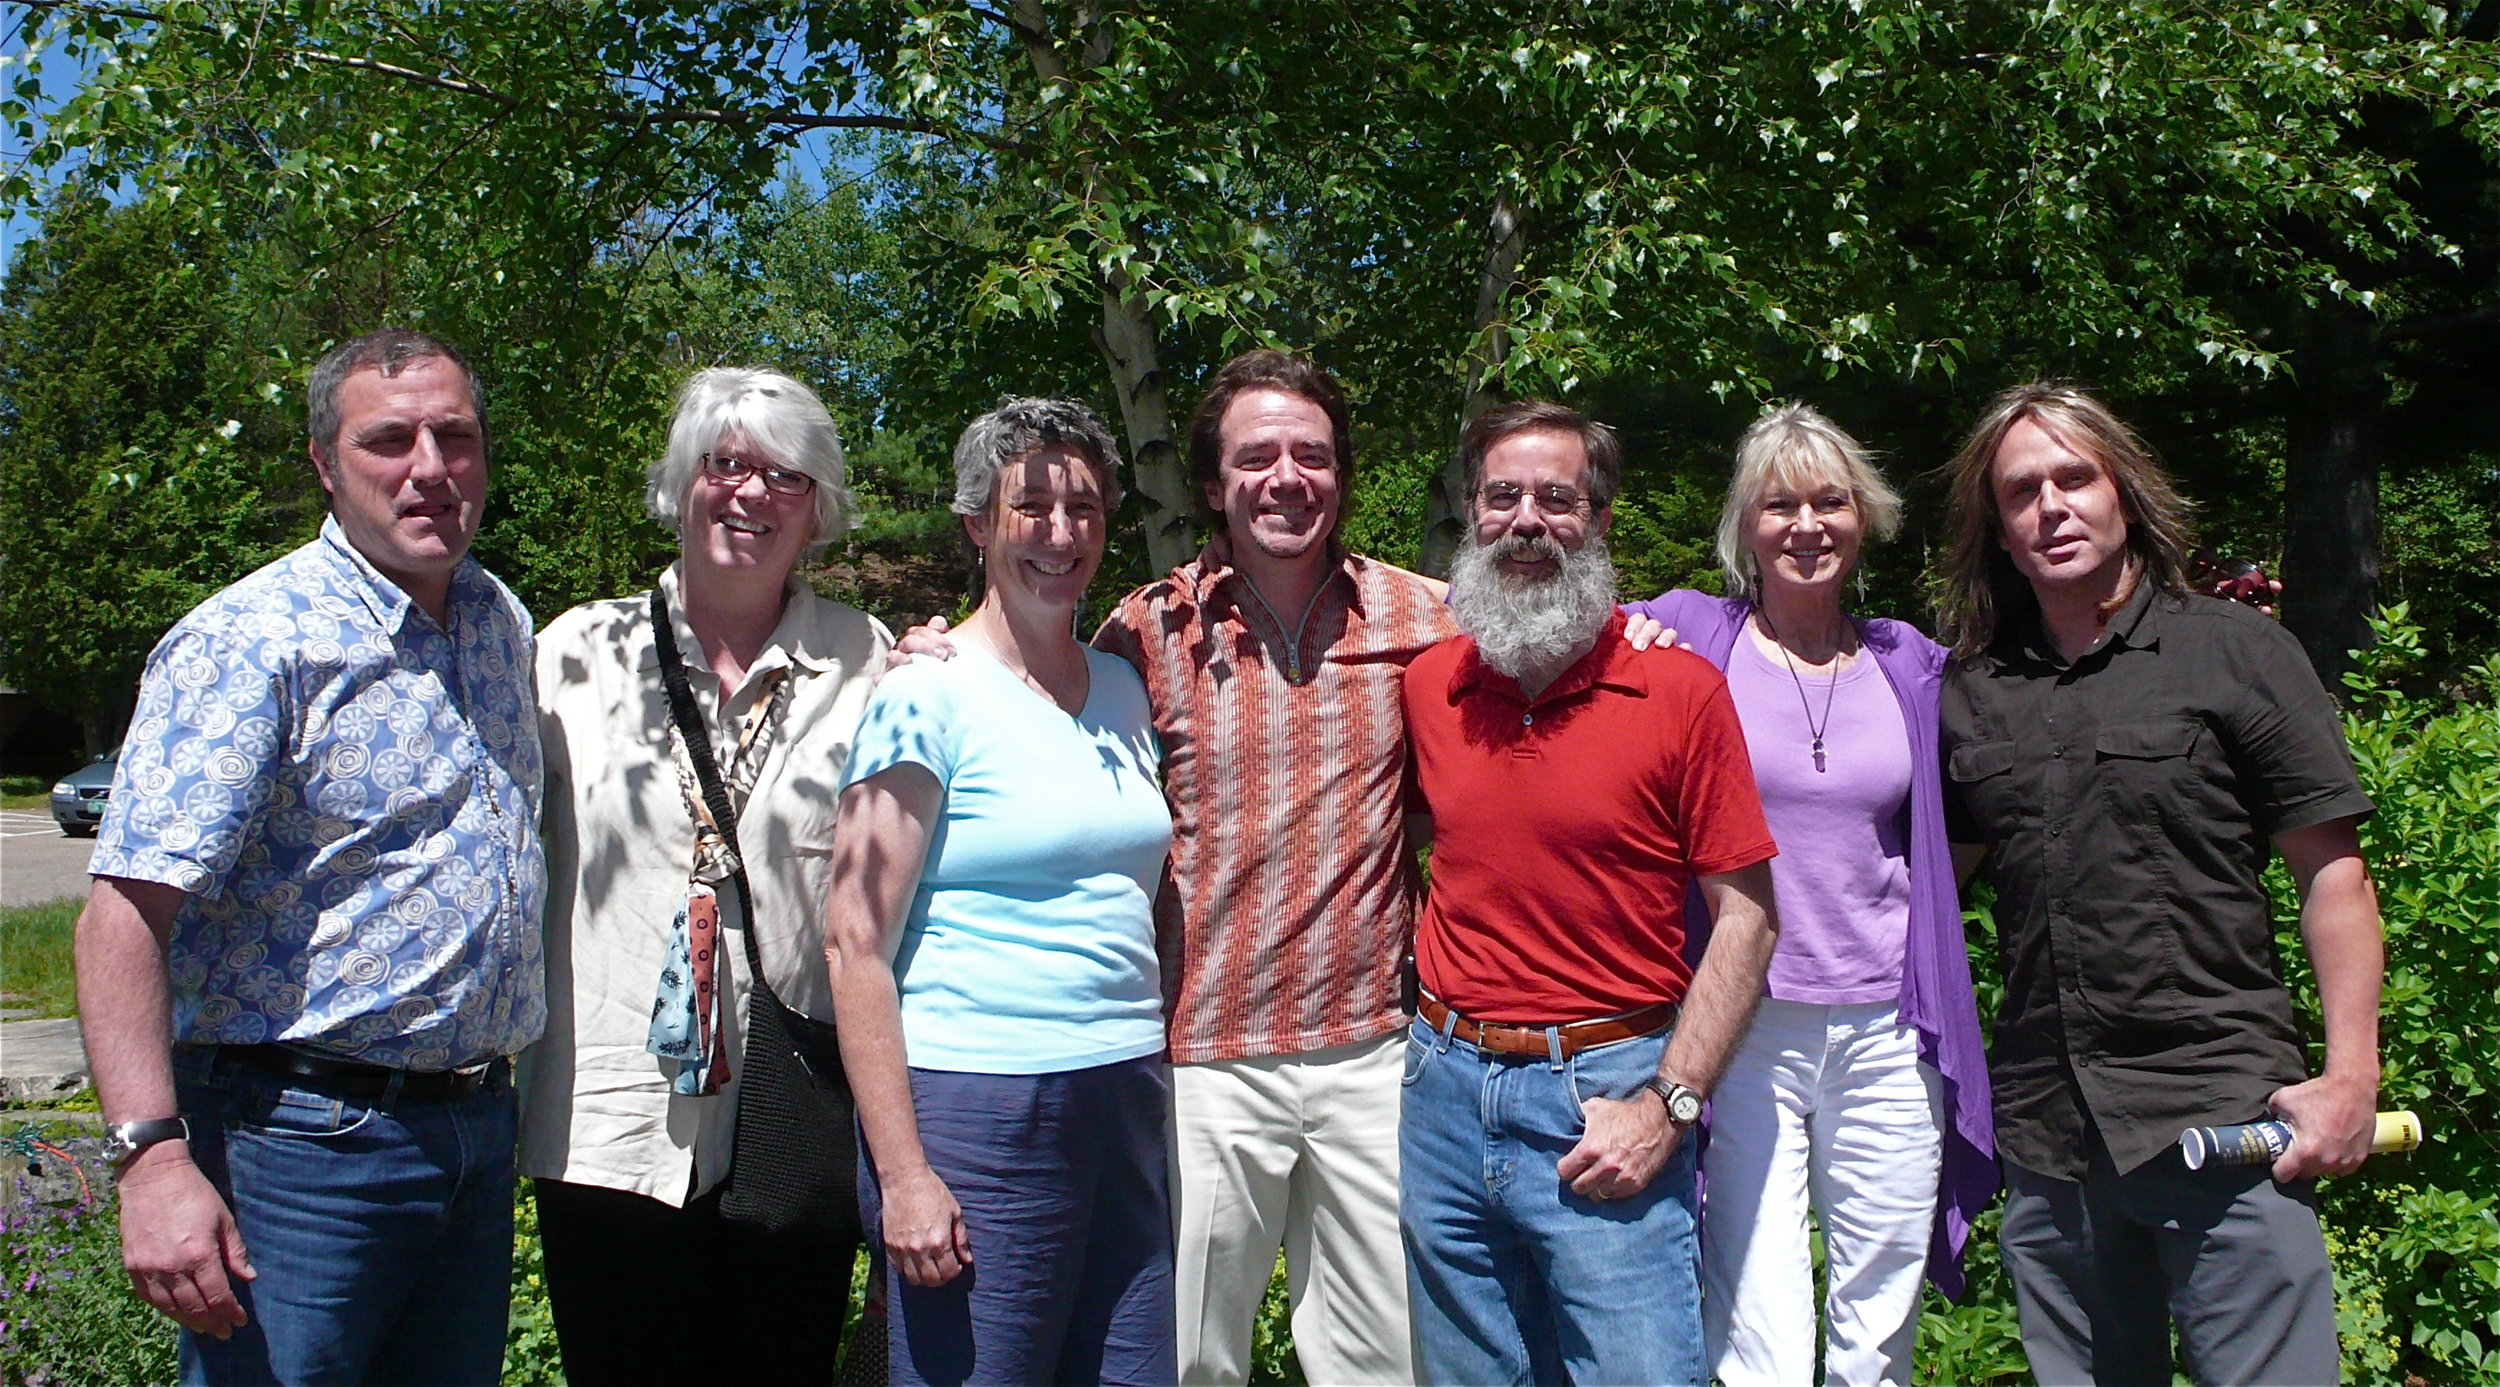 Outreach Team in Lake Placid: Paul Gallo, Gail Brill, Tara Kelly, Art Jones, Steve Costello, Kate Fish, Michael Smith.